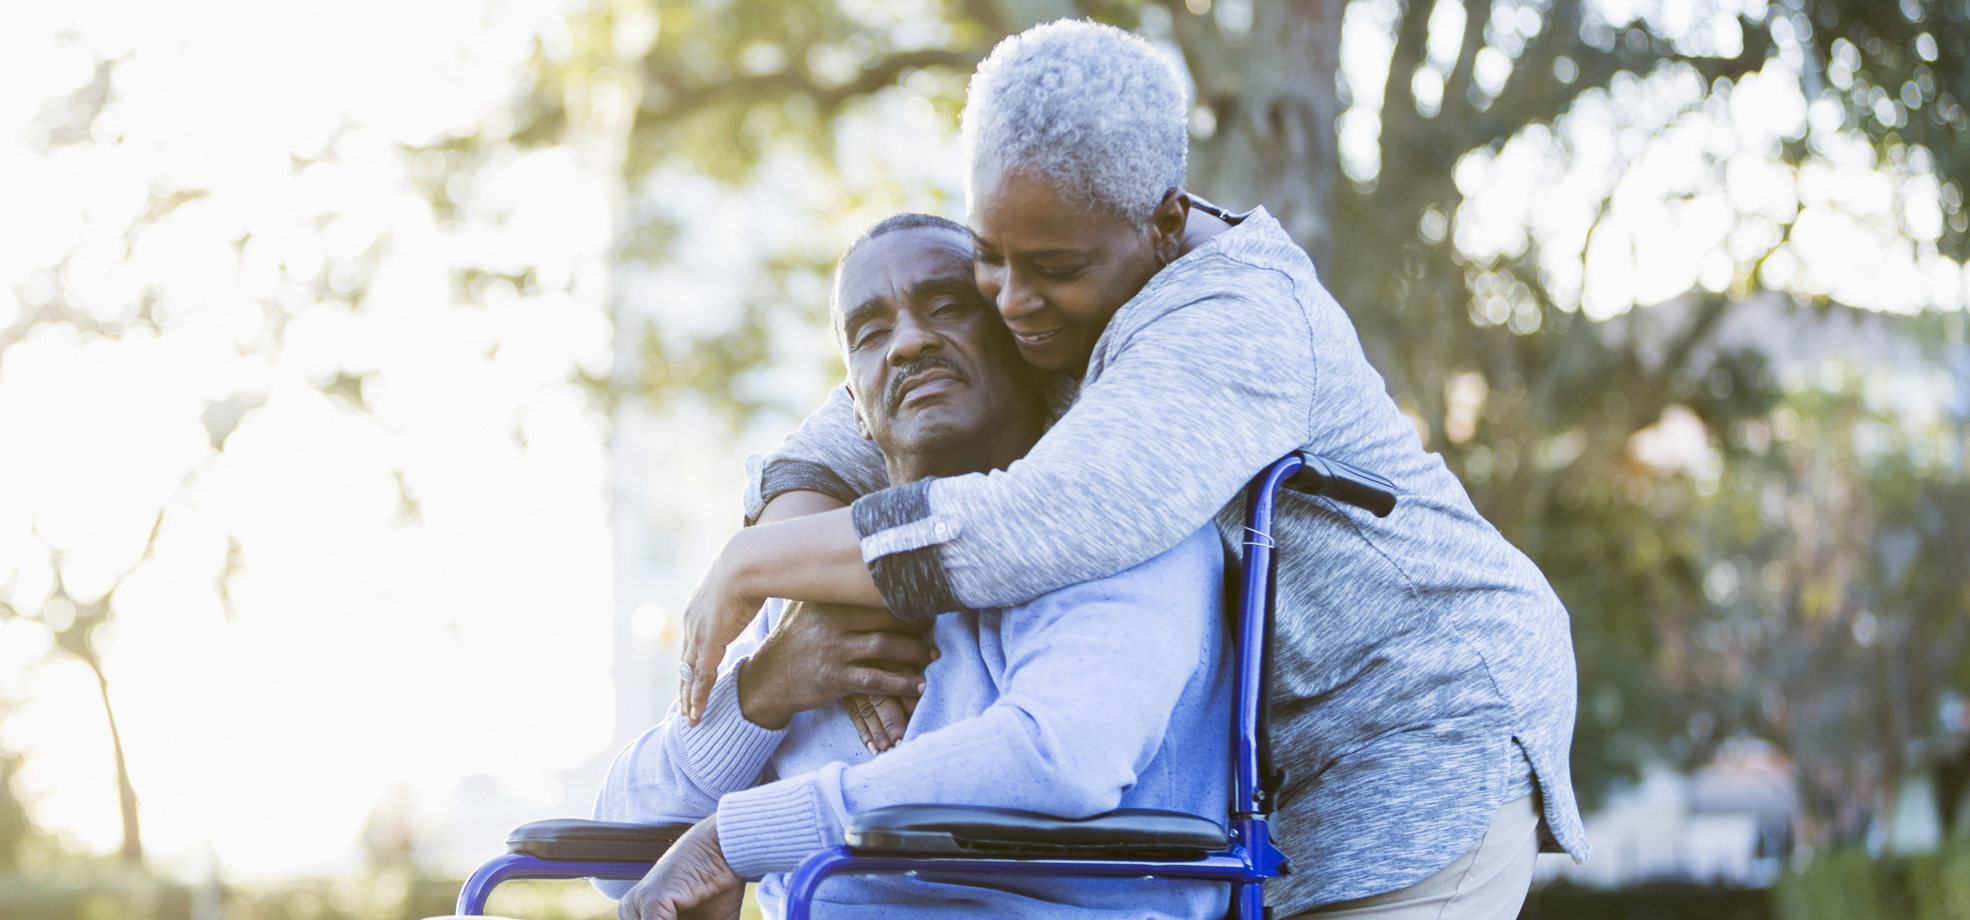 For Caregivers: Don't Burn Out, Find a Respite